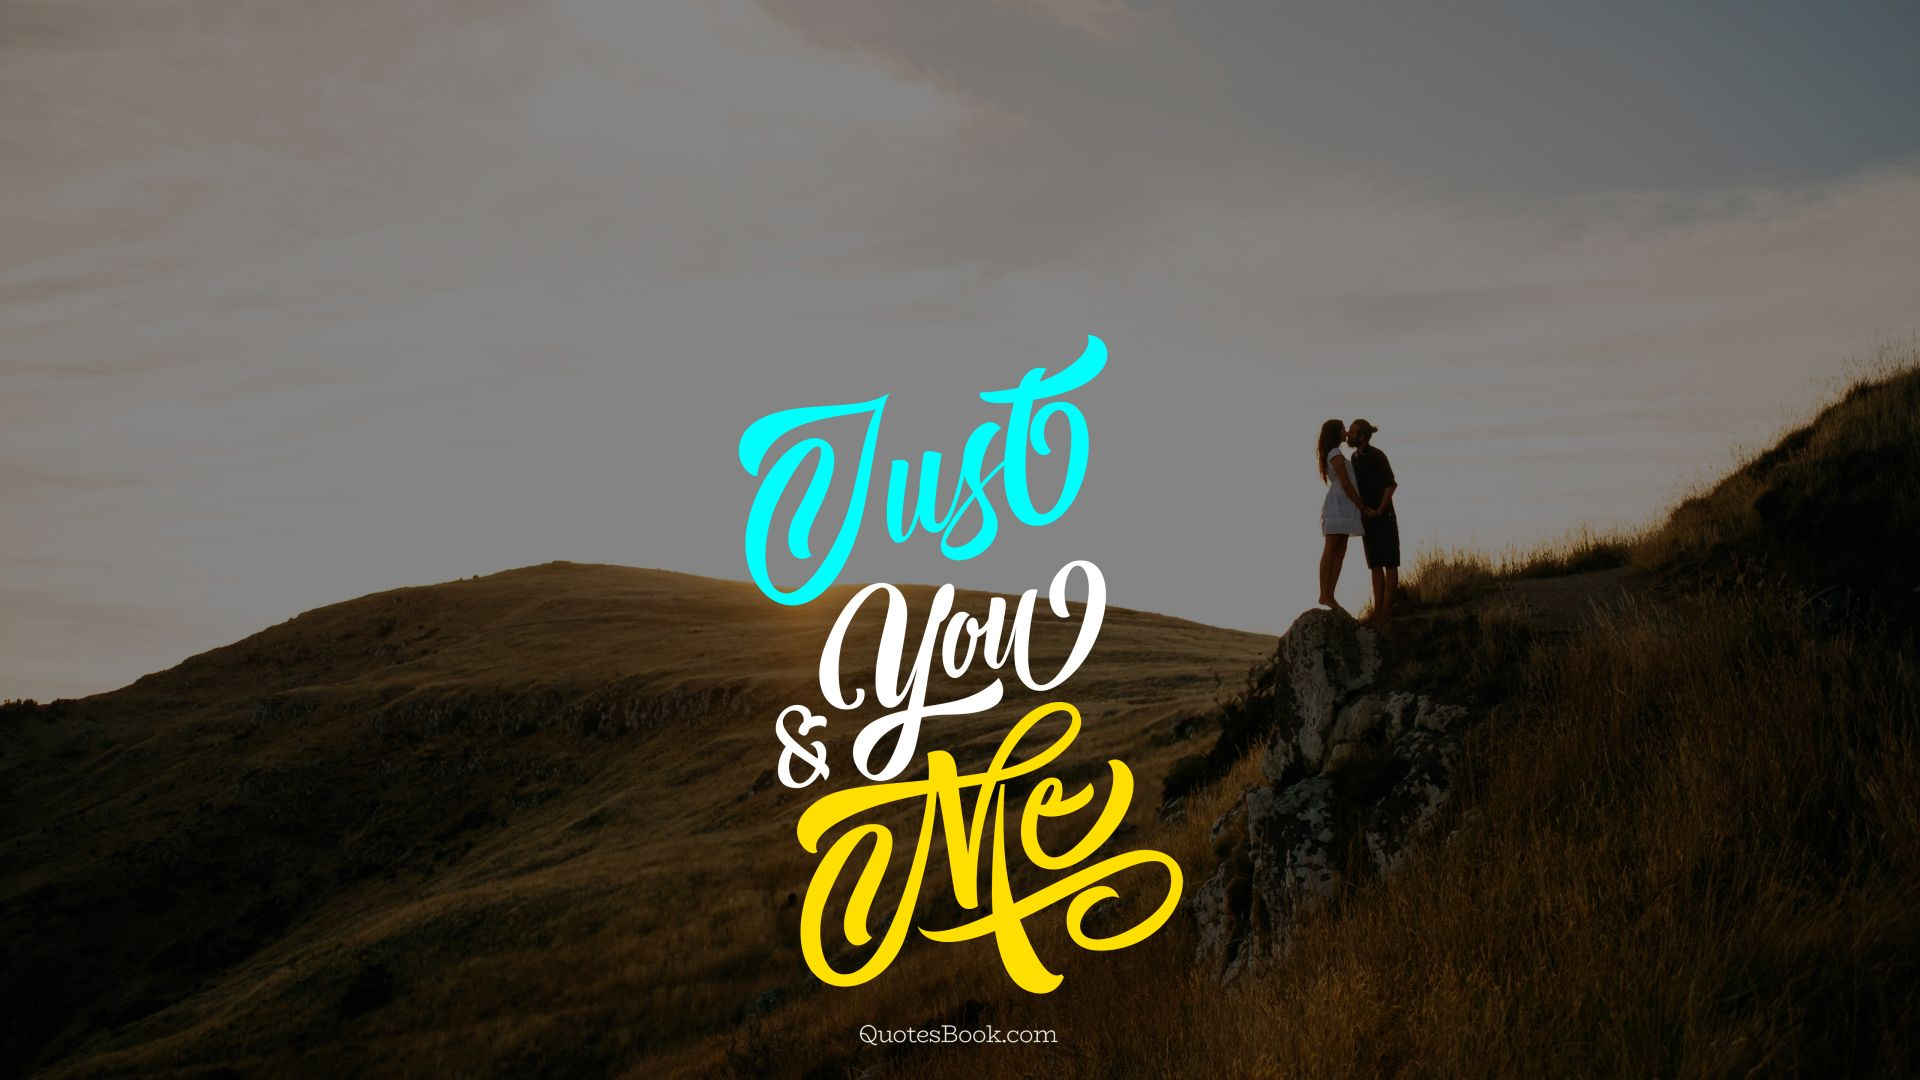 Just You And Me Quotesbook